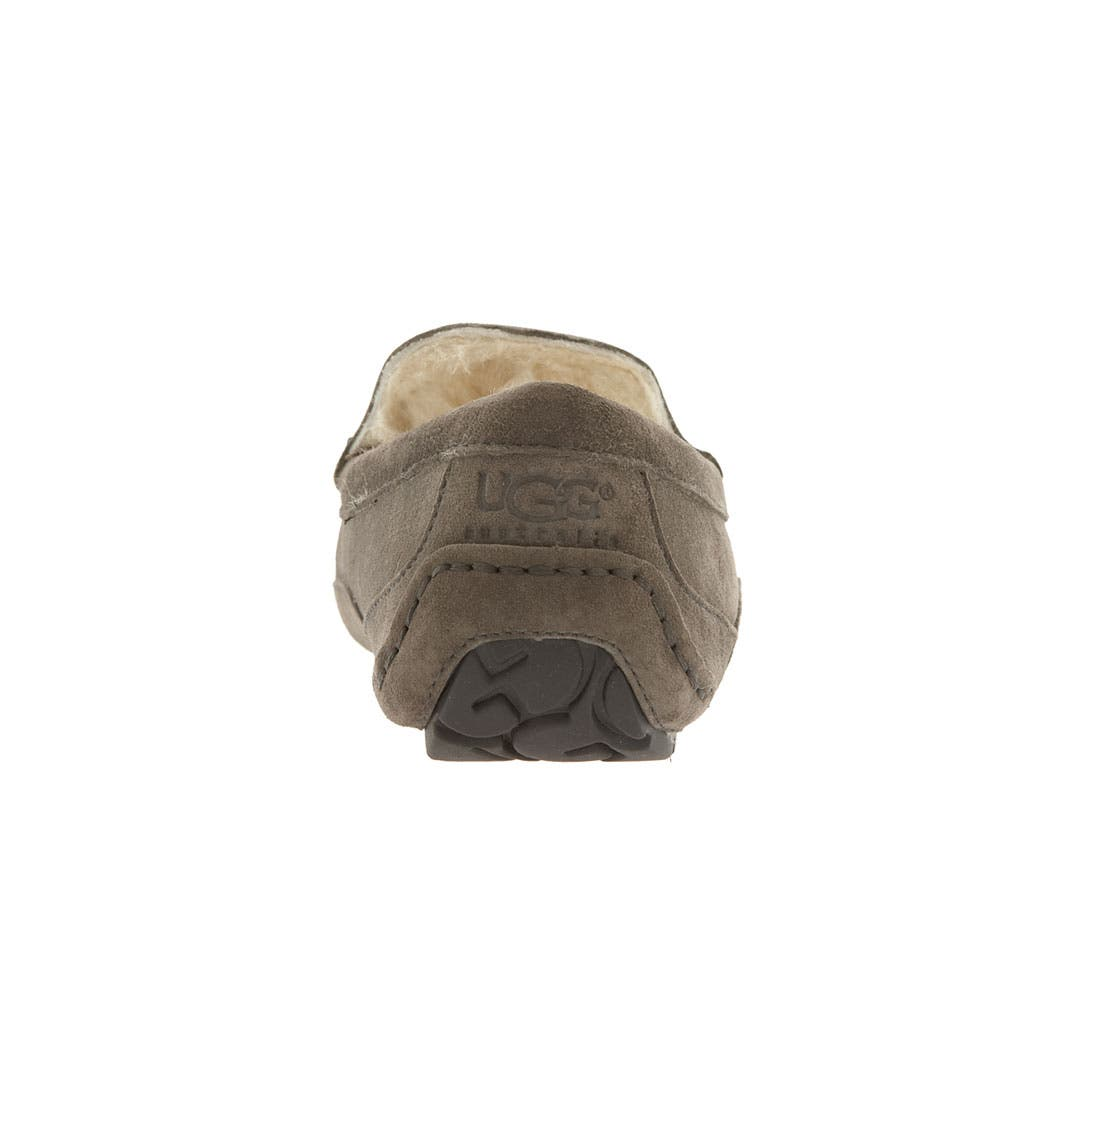 Ascot Suede Slipper,                             Alternate thumbnail 9, color,                             CHARCOAL